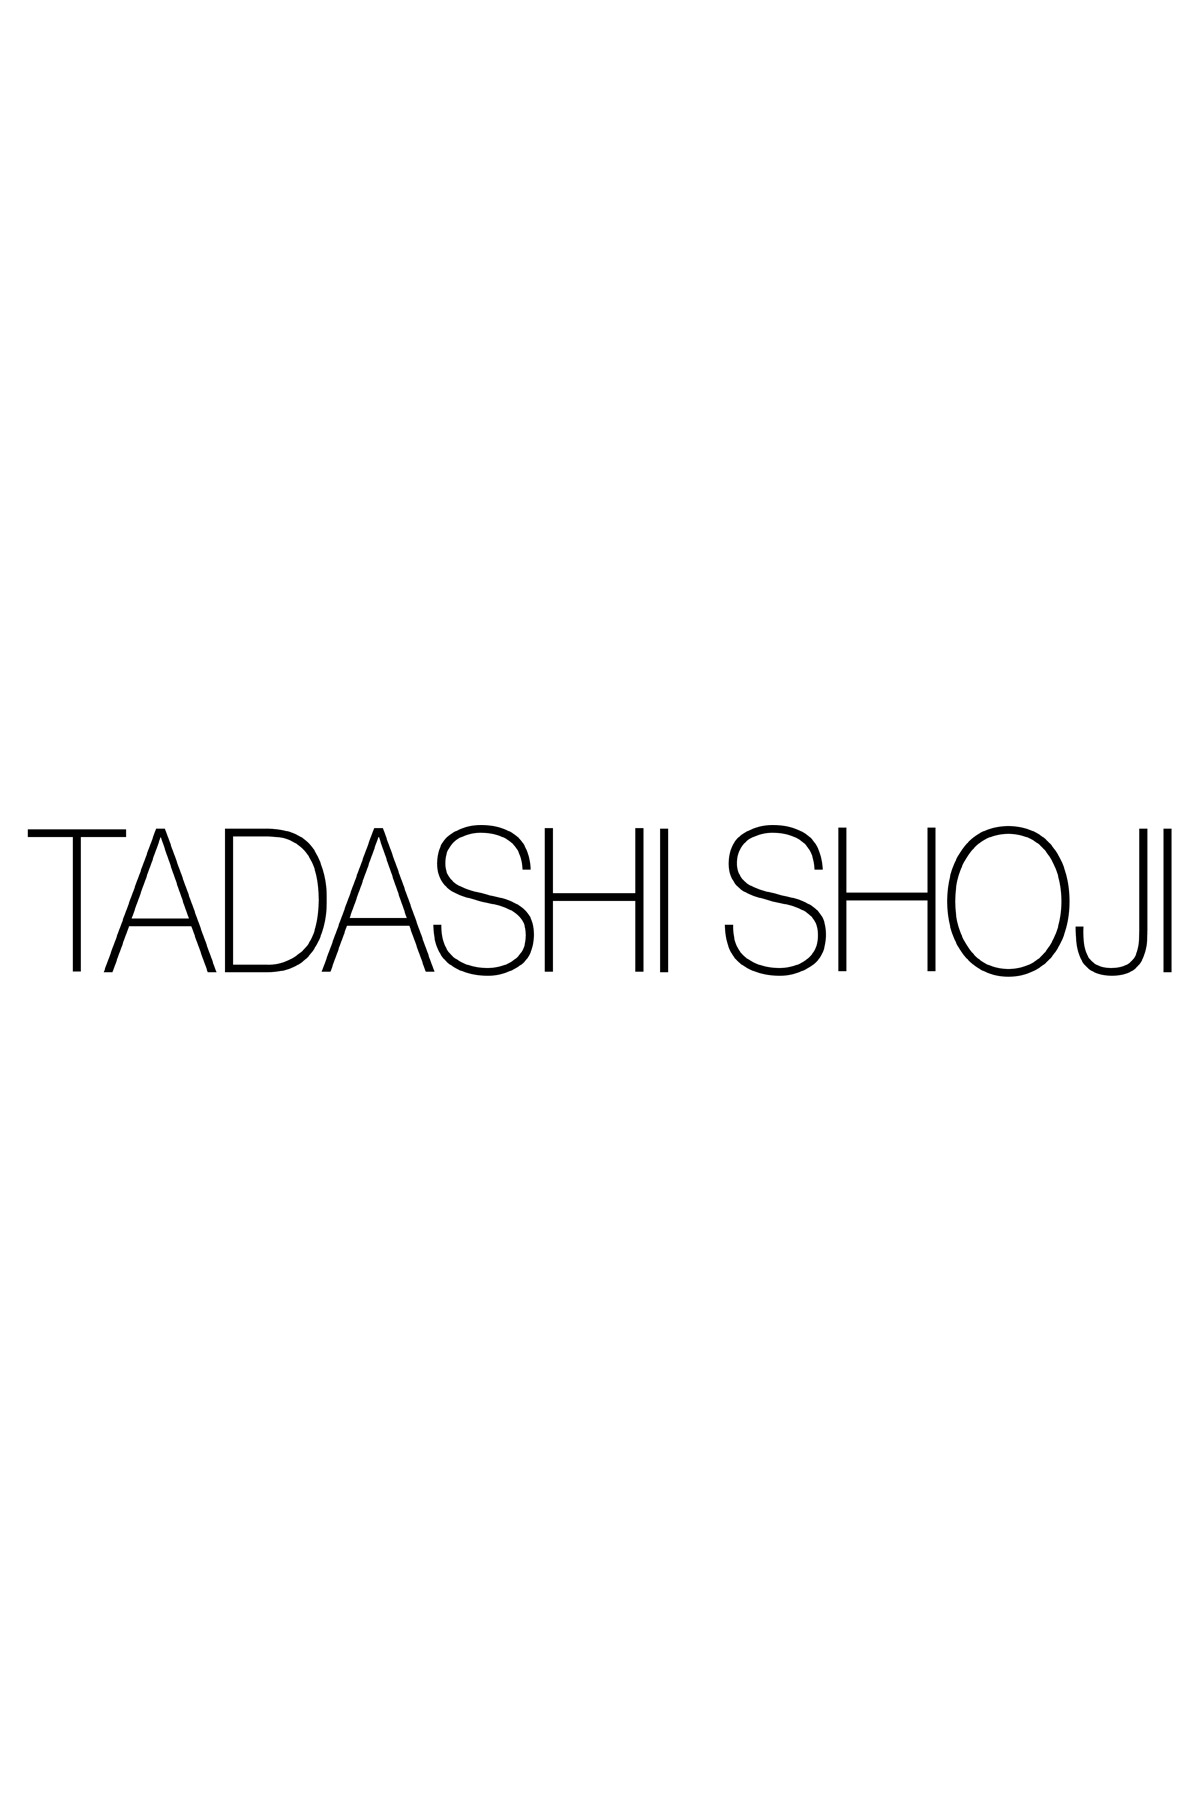 Tadashi Shoji - Peony Embroidered Stretch Crepe Gown - Detail